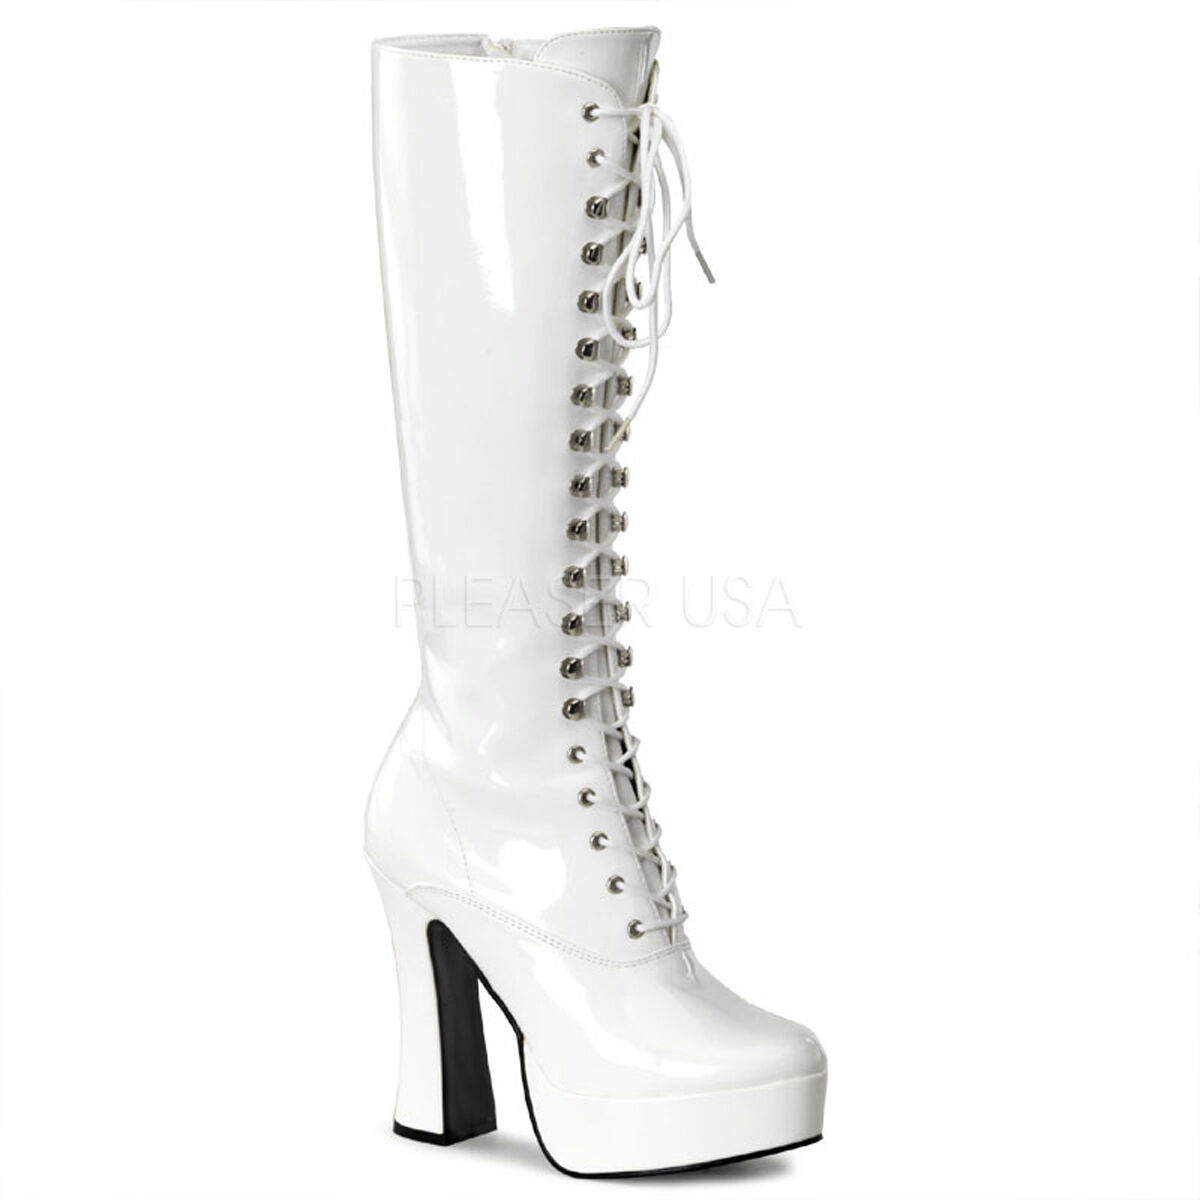 PLEASER Sexy WEISS Patent Platform Lace Up 5